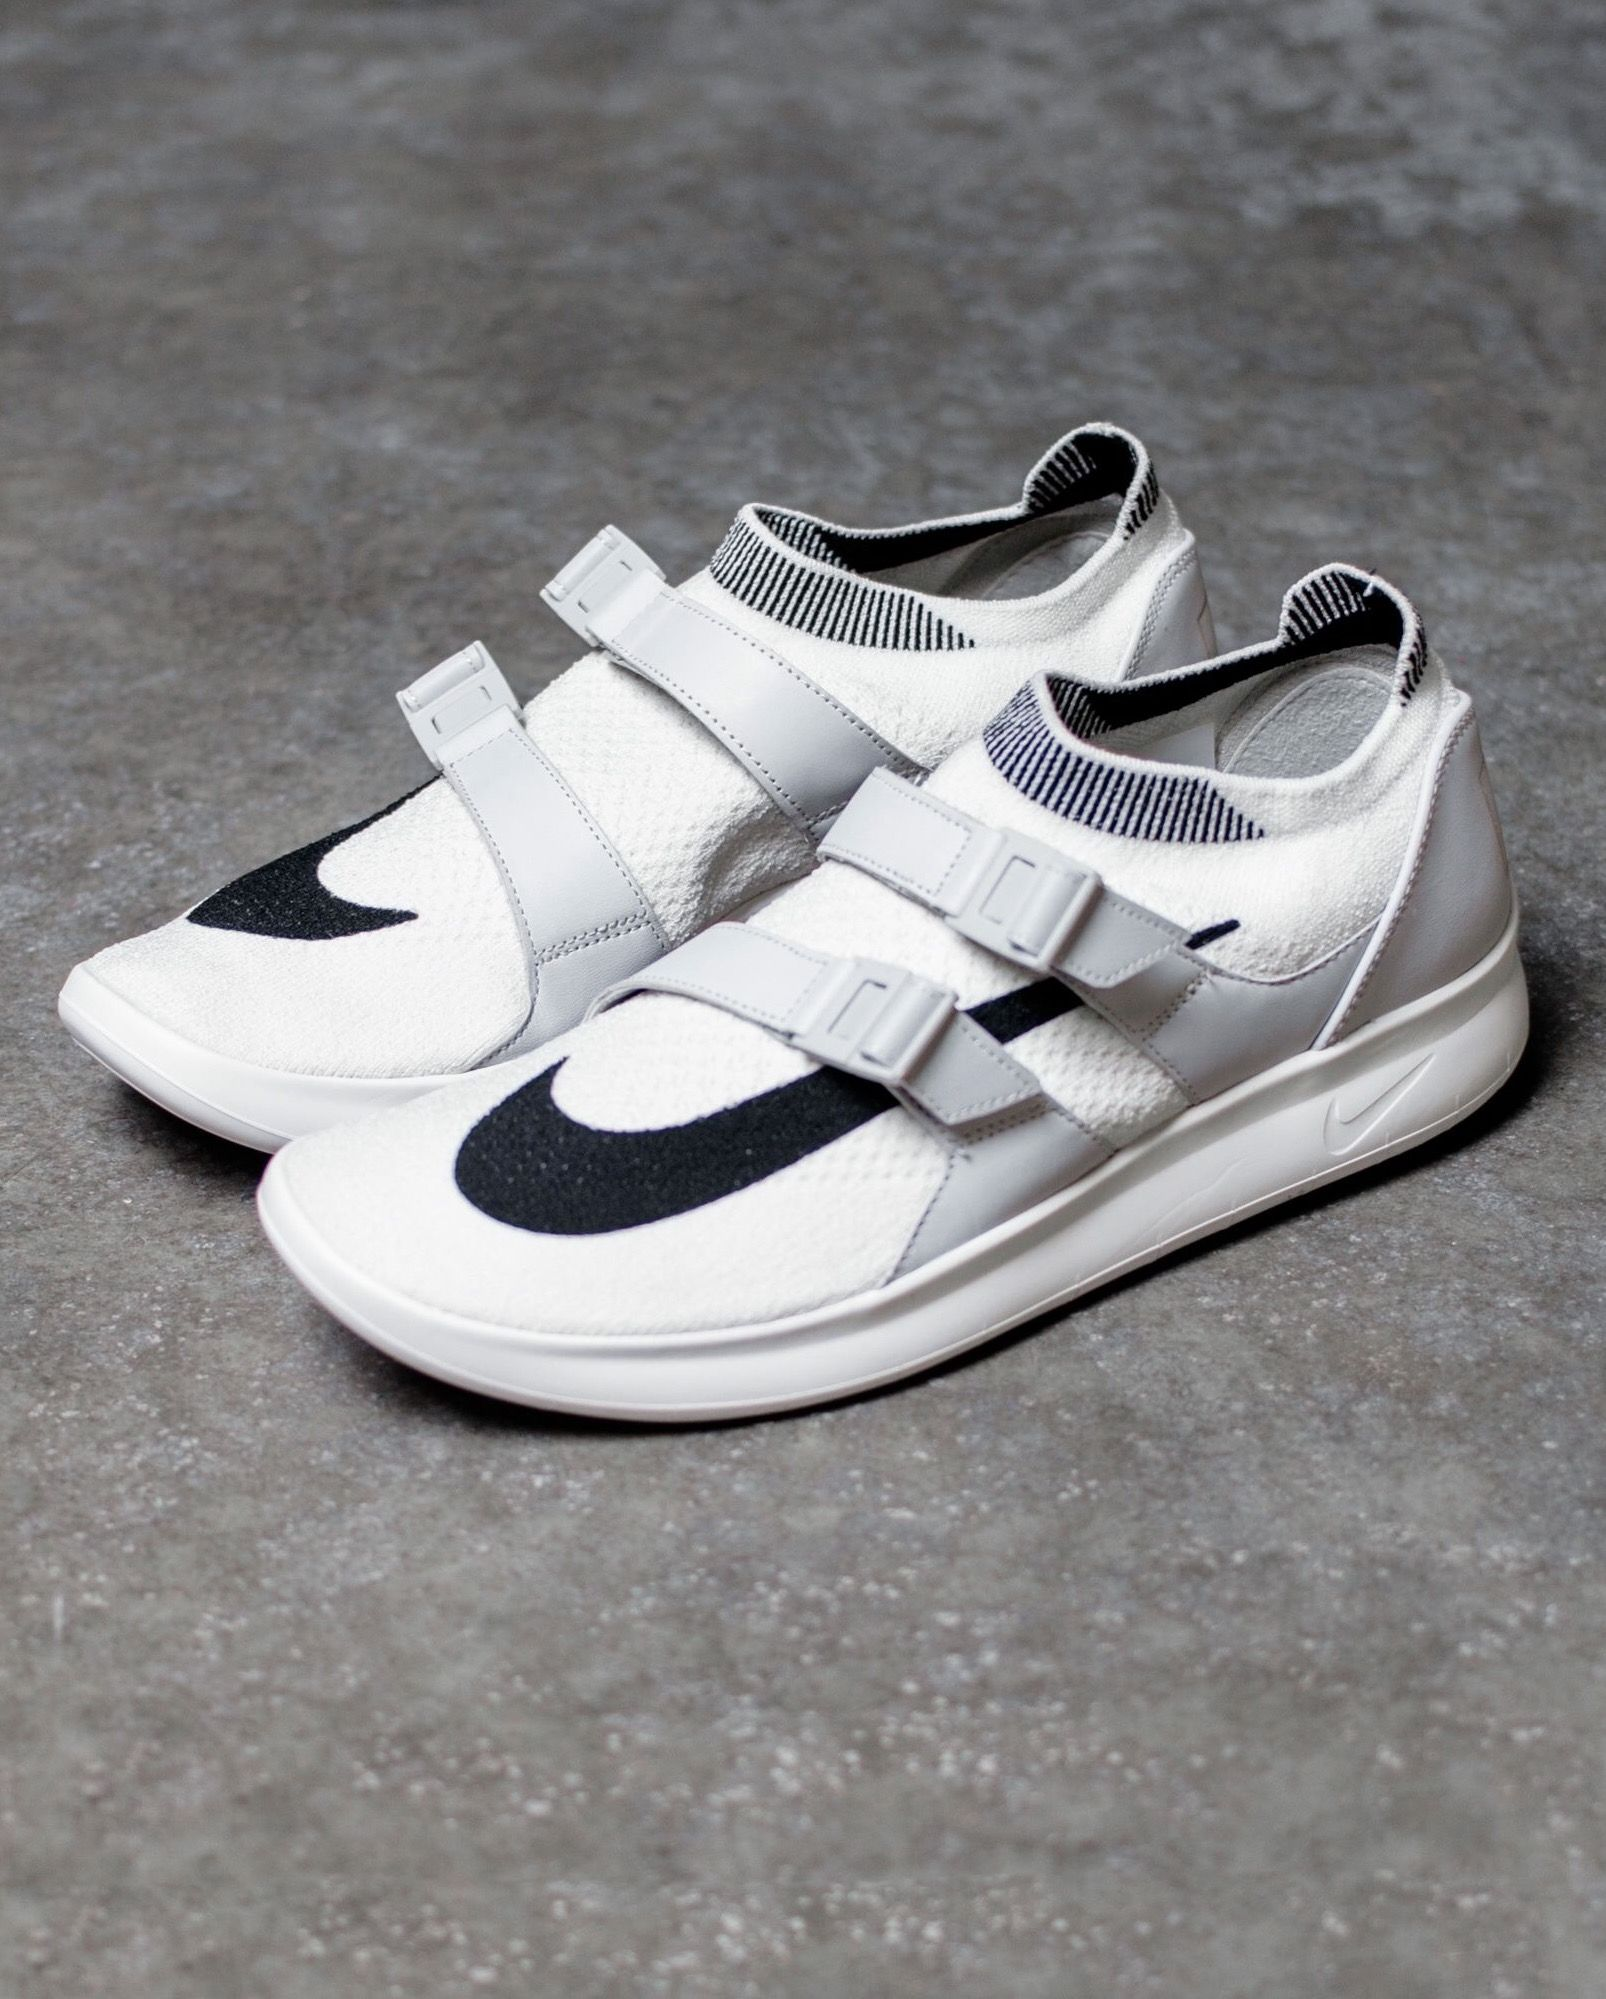 new product 748a7 52d86 Nike Air Sock Racer